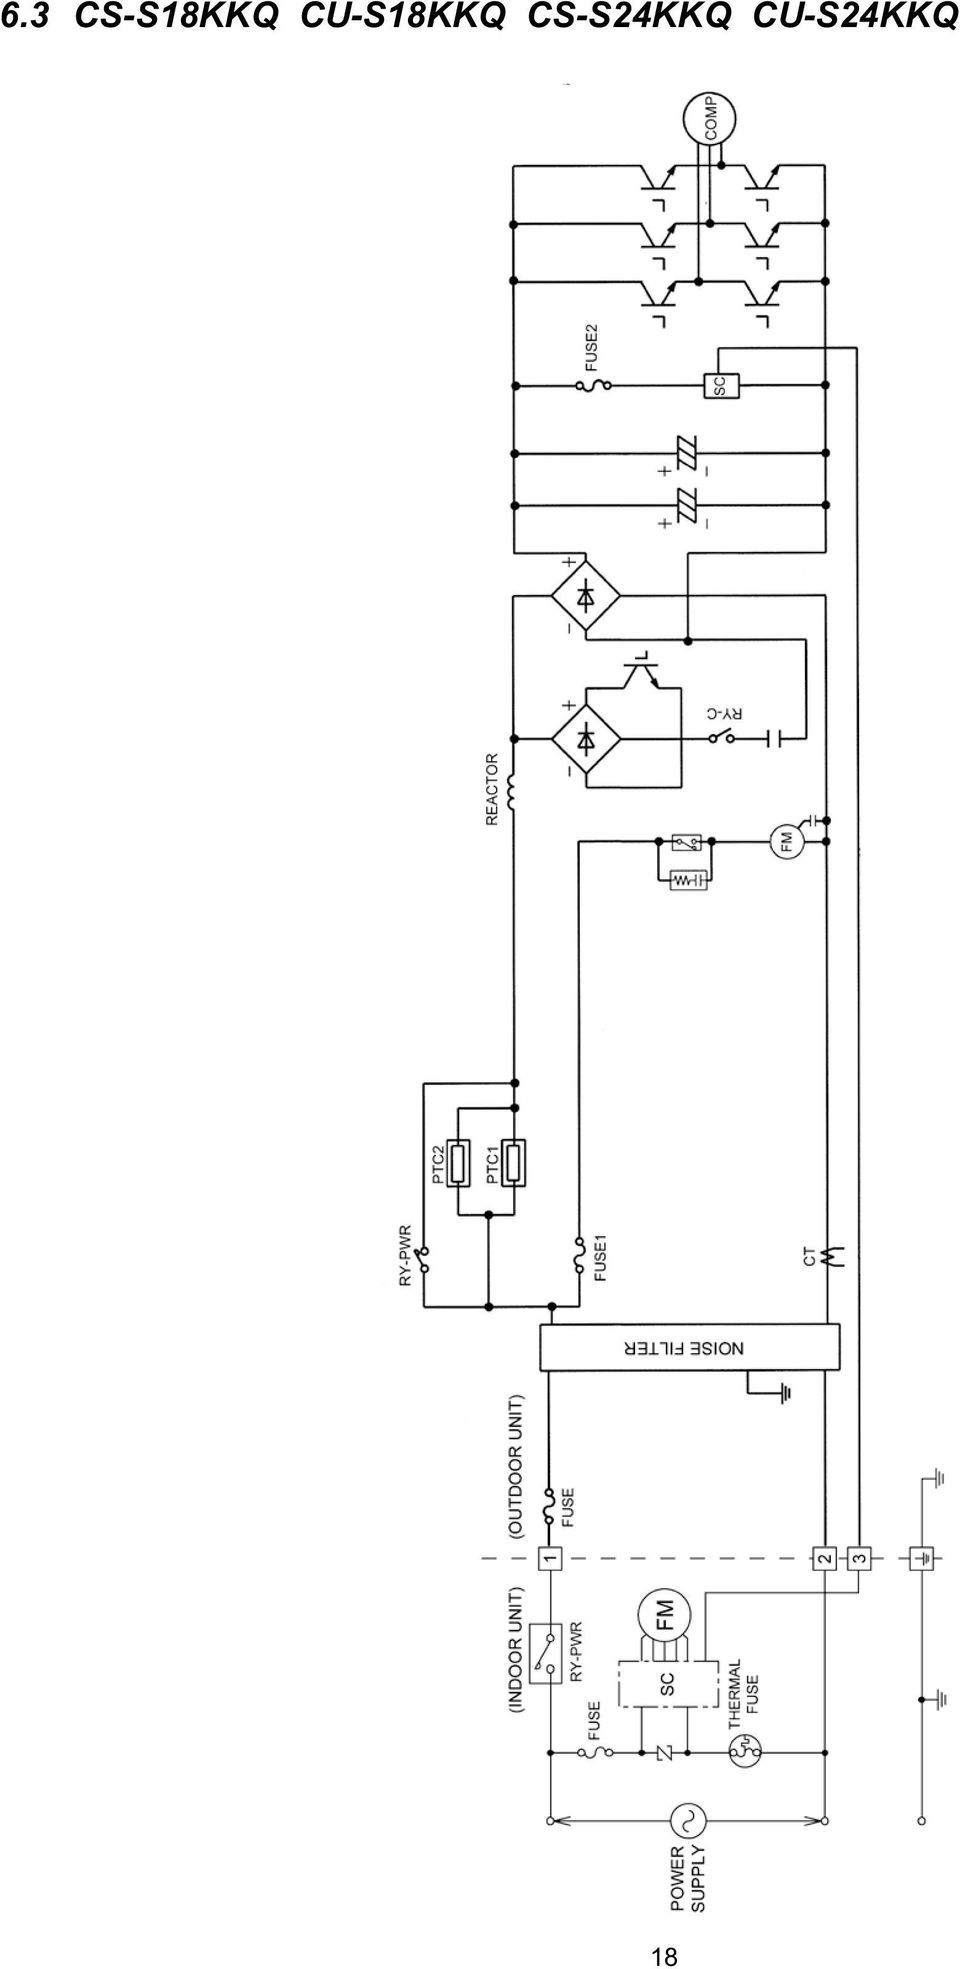 CU-S9KKQ CU-S12KKQ CU-S18KKQ CU-S24KKQ CS-S9KKQ CS-S12KKQ CS-S18KKQ on mini split thermostat, mitzubishi 20 ton ductless split system heat pump diagram, mini split service, mini split power, mini split tools, mini split compressor, mini split motor, mini split air conditioning, mini split troubleshooting, daikin inverter compressor diagram, mini split dimensions, mini split parts list, mini split installation, mini split cable, mini split wire, mini split accessories, mini split coil, mini split heater, mini split system,